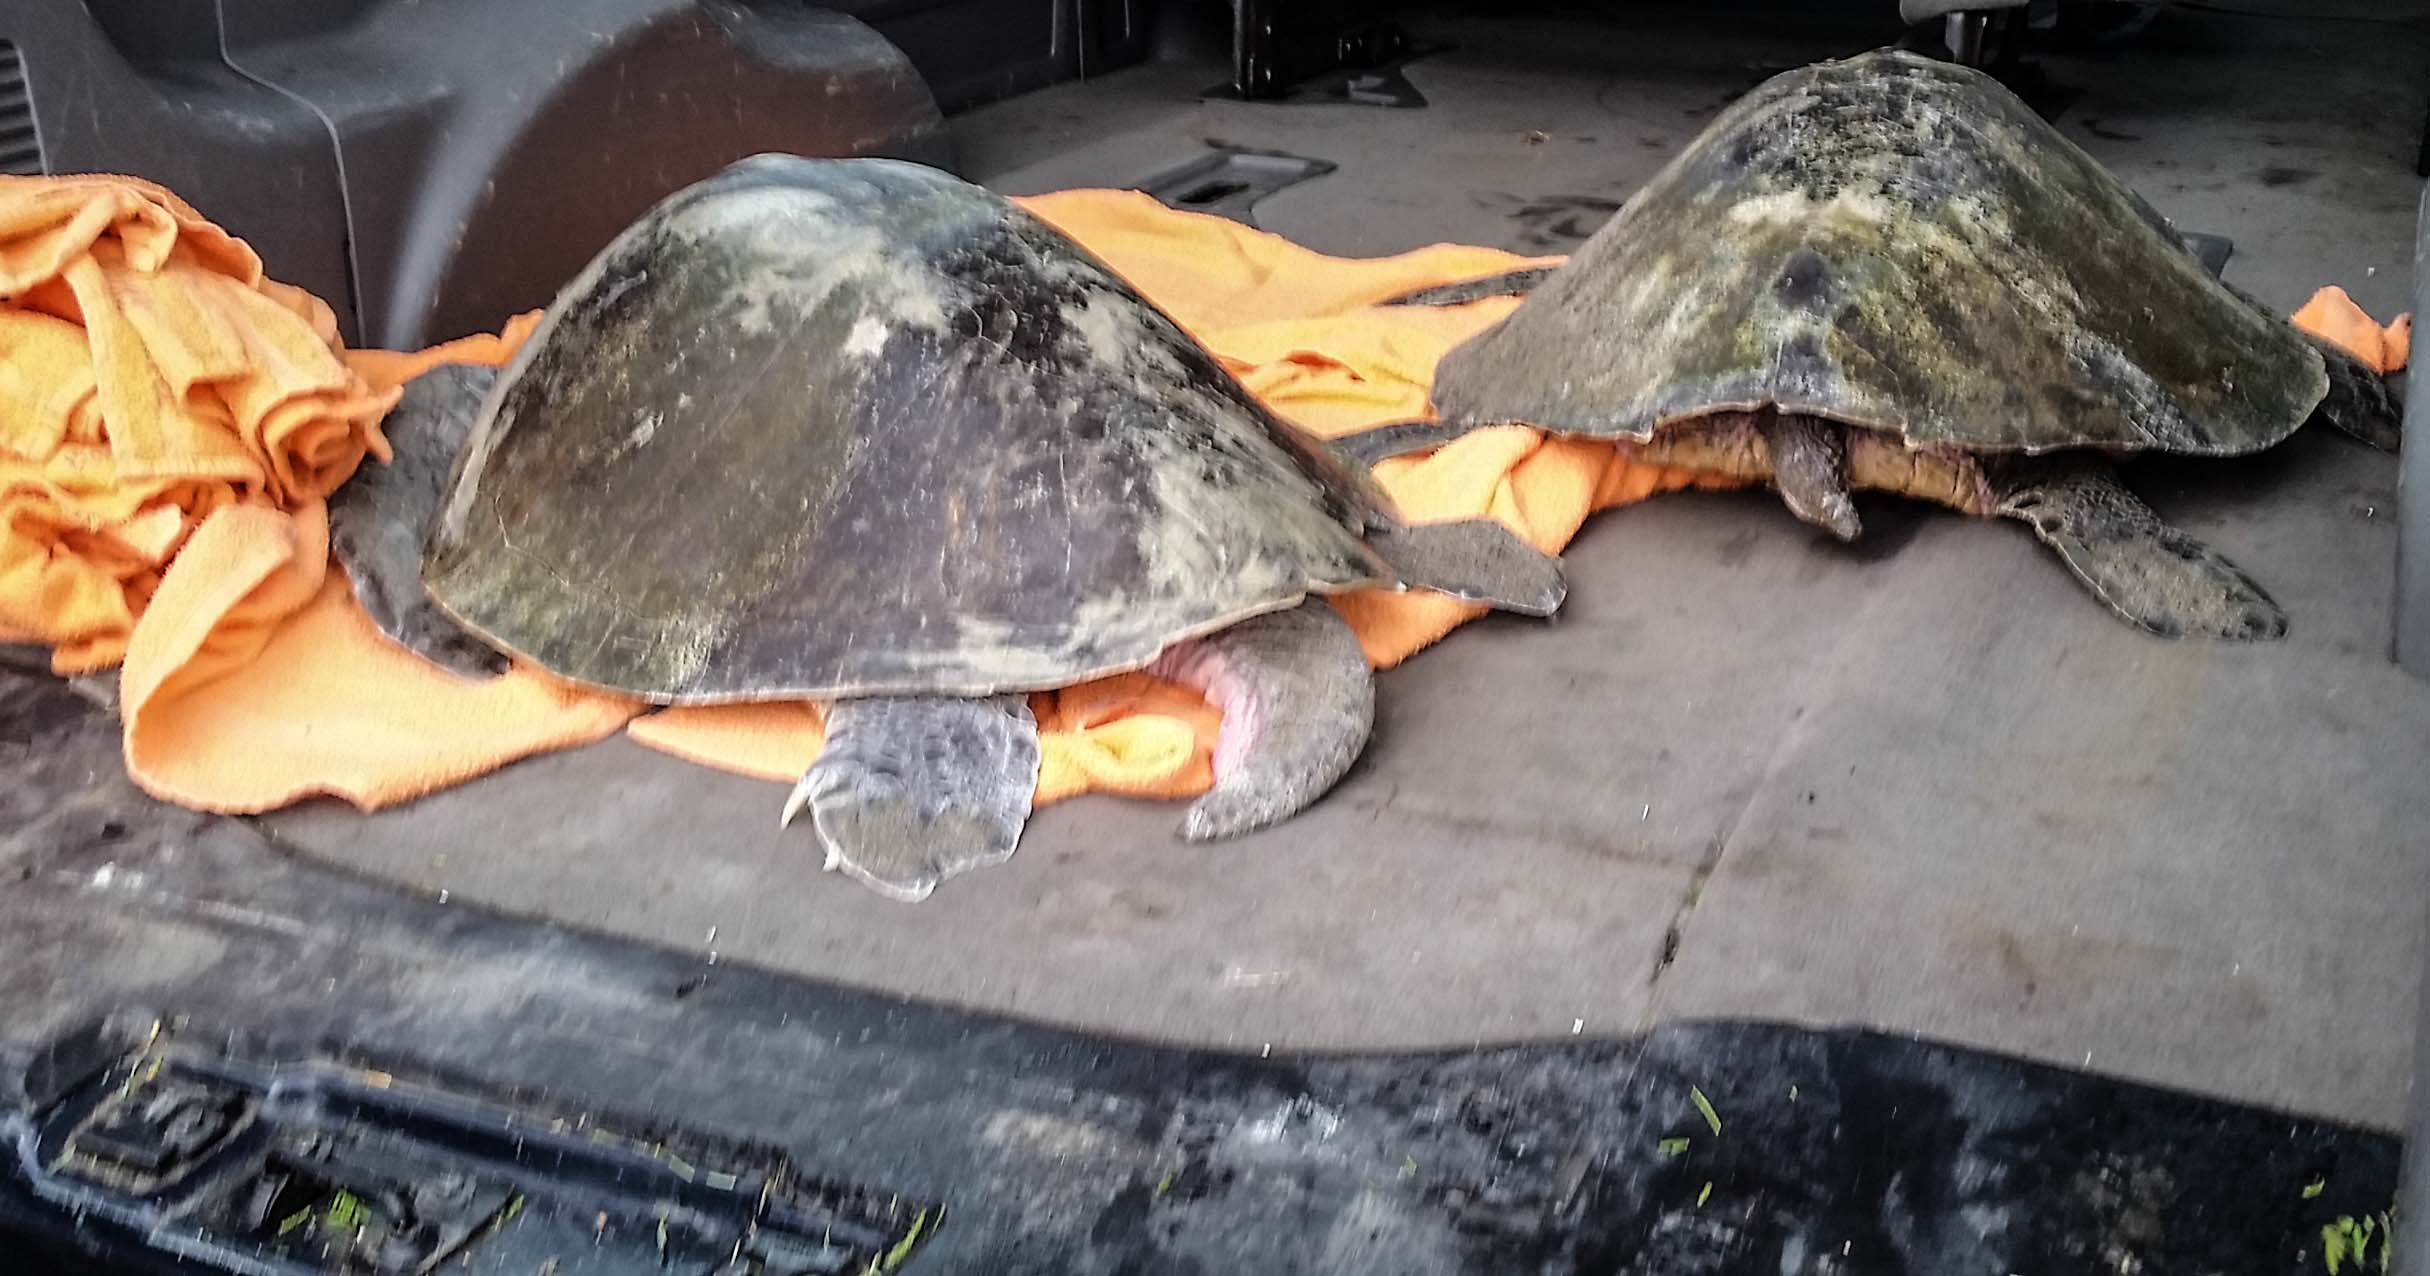 Two more endangered sea turtles washed up on Northwest beaches Monday. Both animals are now in the care of the Oregon Coast Aquarium, where a third turtle rescued December 10 is undergoing rehabilitation. Photos courtesy Oregon Coast Aquarium